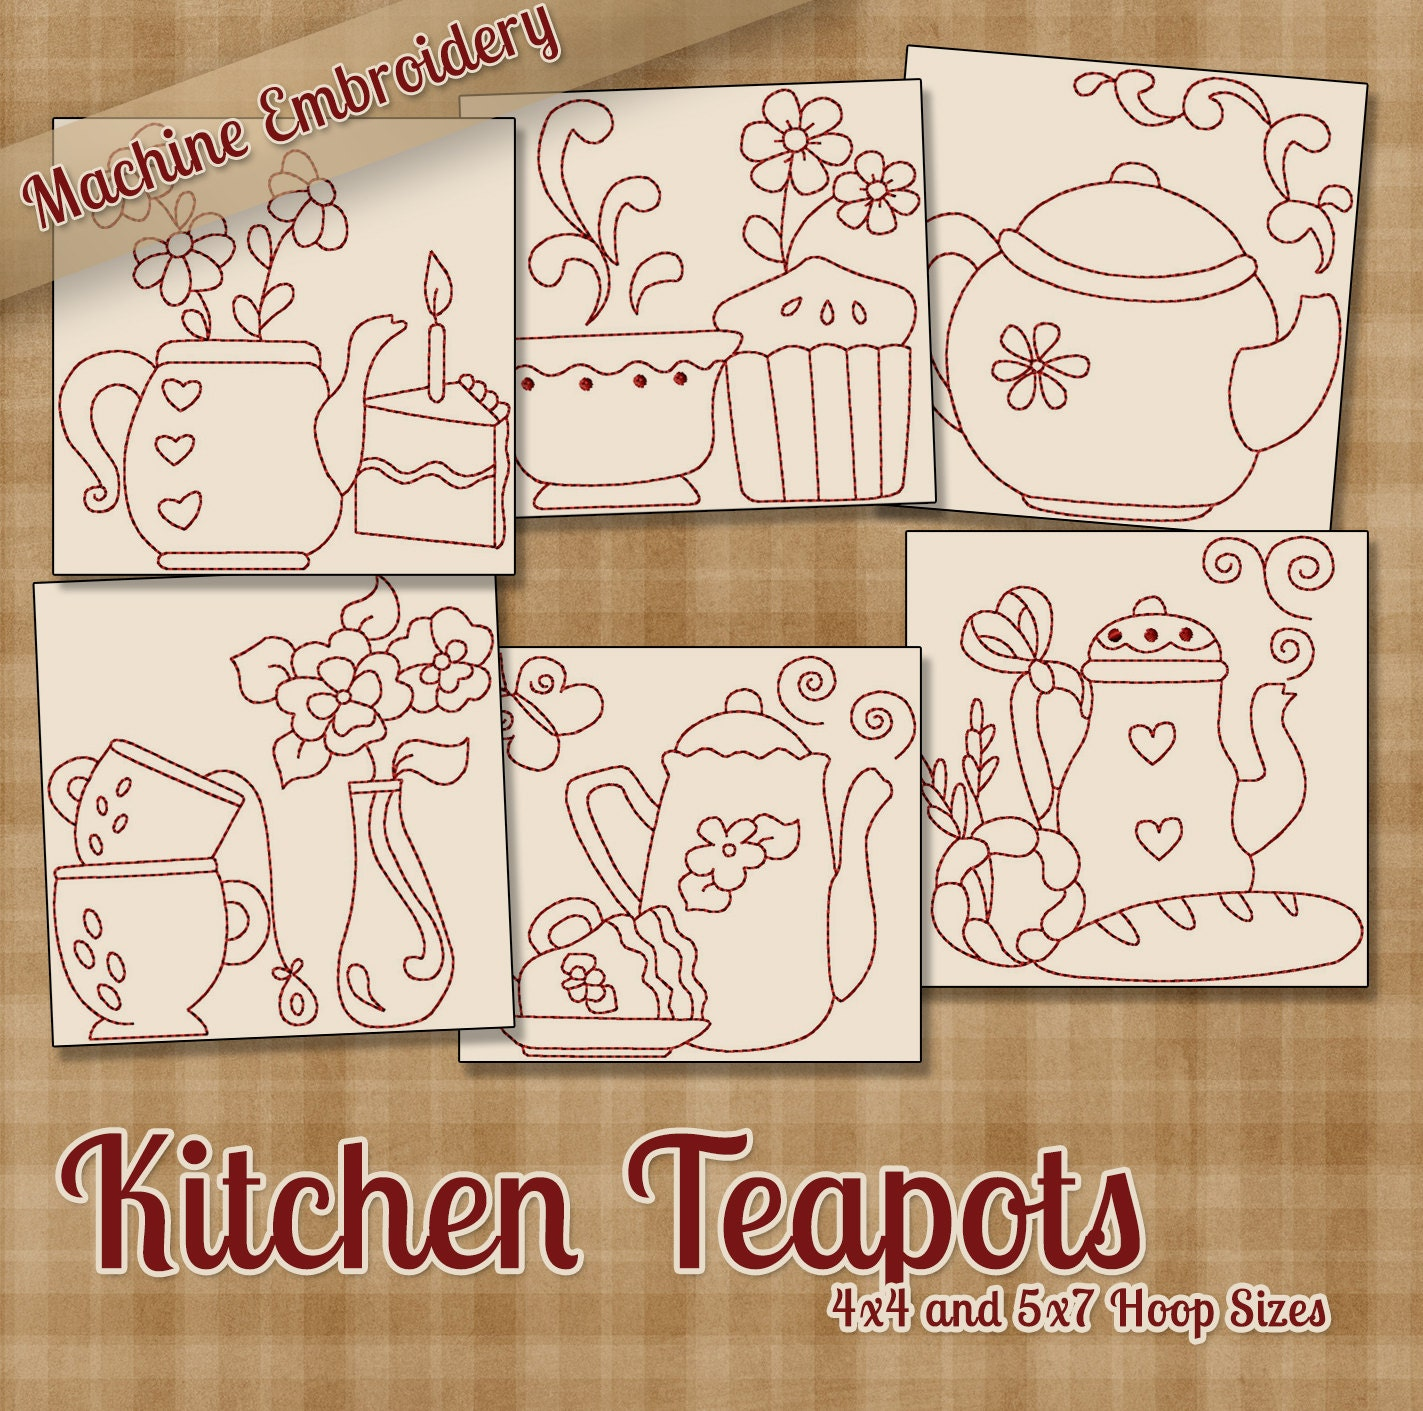 Kitchen Teapots Redwork Machine Embroidery Patterns Designs